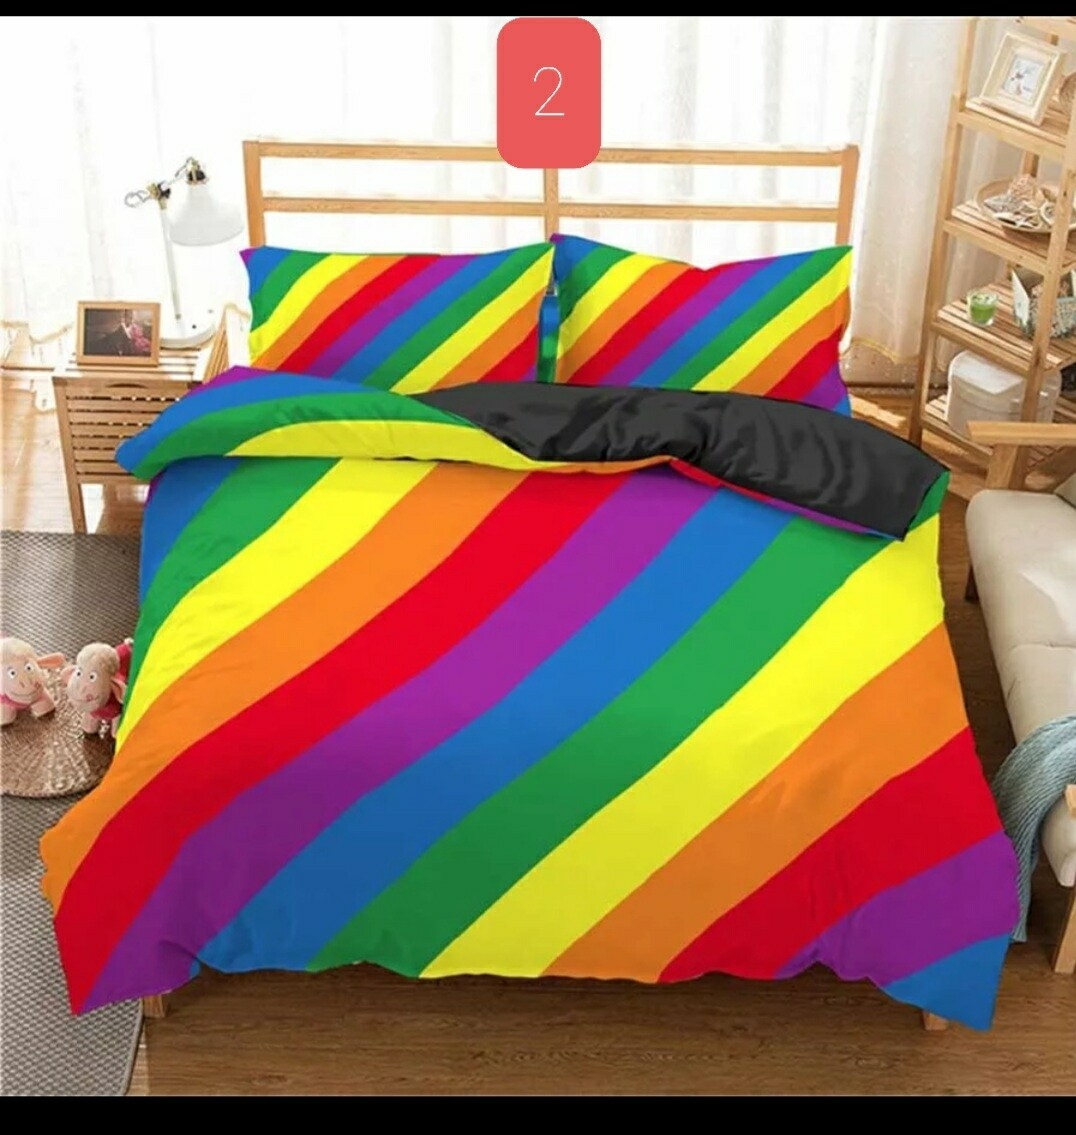 Comforter Bedding Sets Rainbow #2 - Printed Stripped